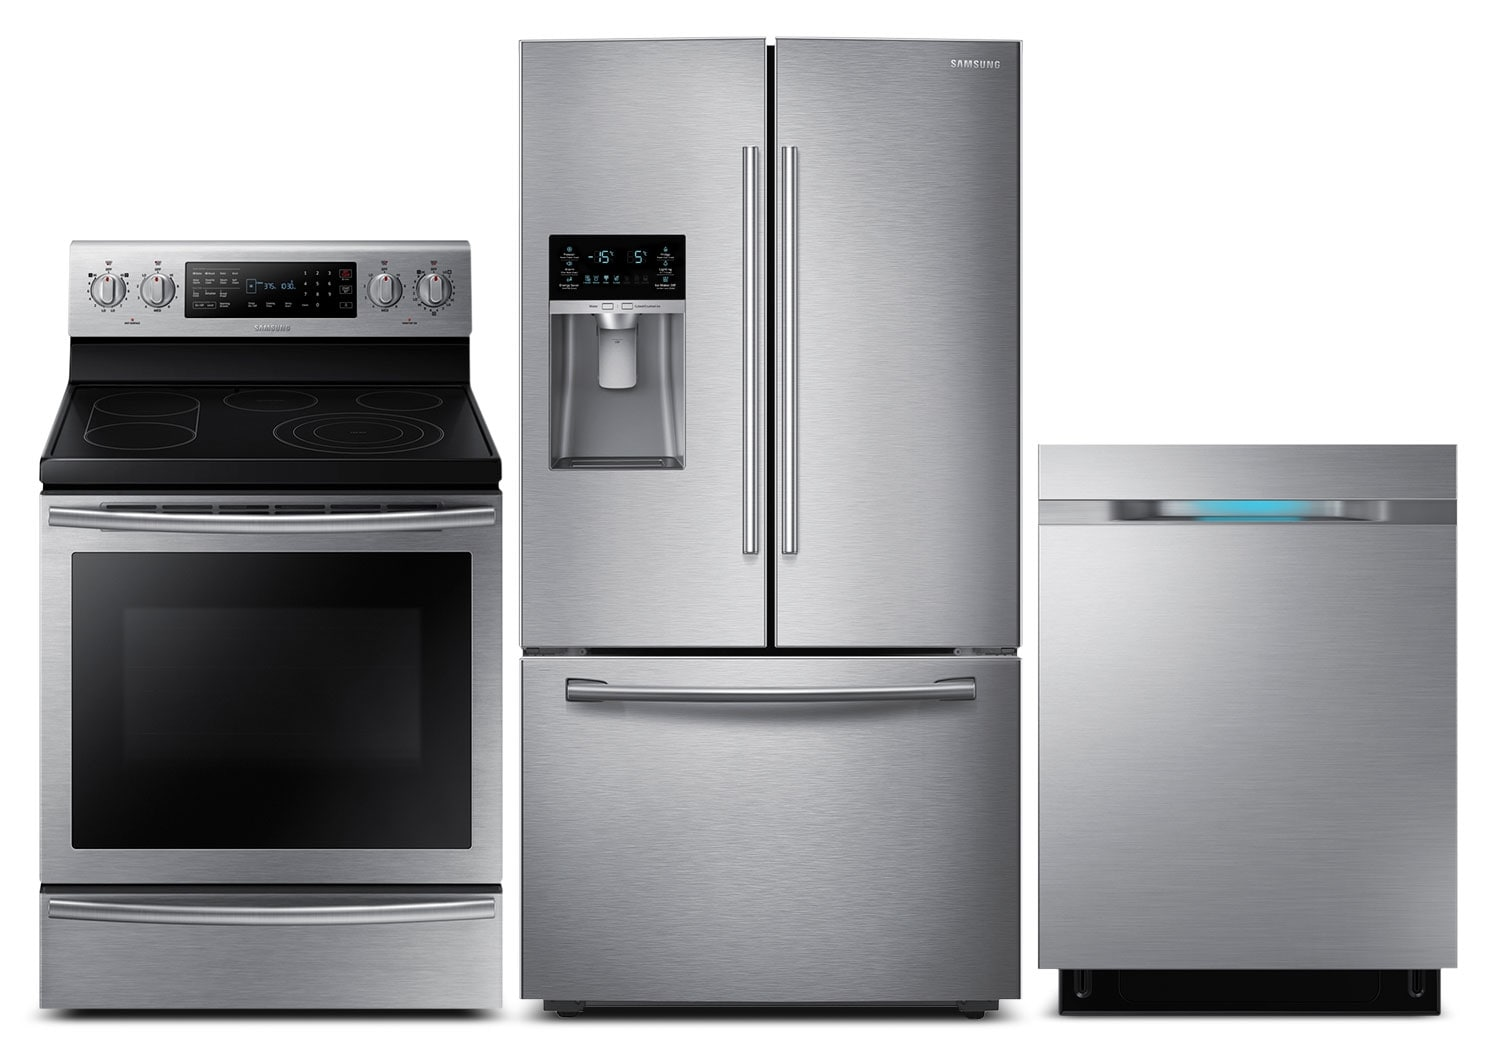 Refrigerators and Freezers - Samsung 28 Cu. Ft. Refrigerator, Electric Convection Range and Dishwasher - Stainless Steel